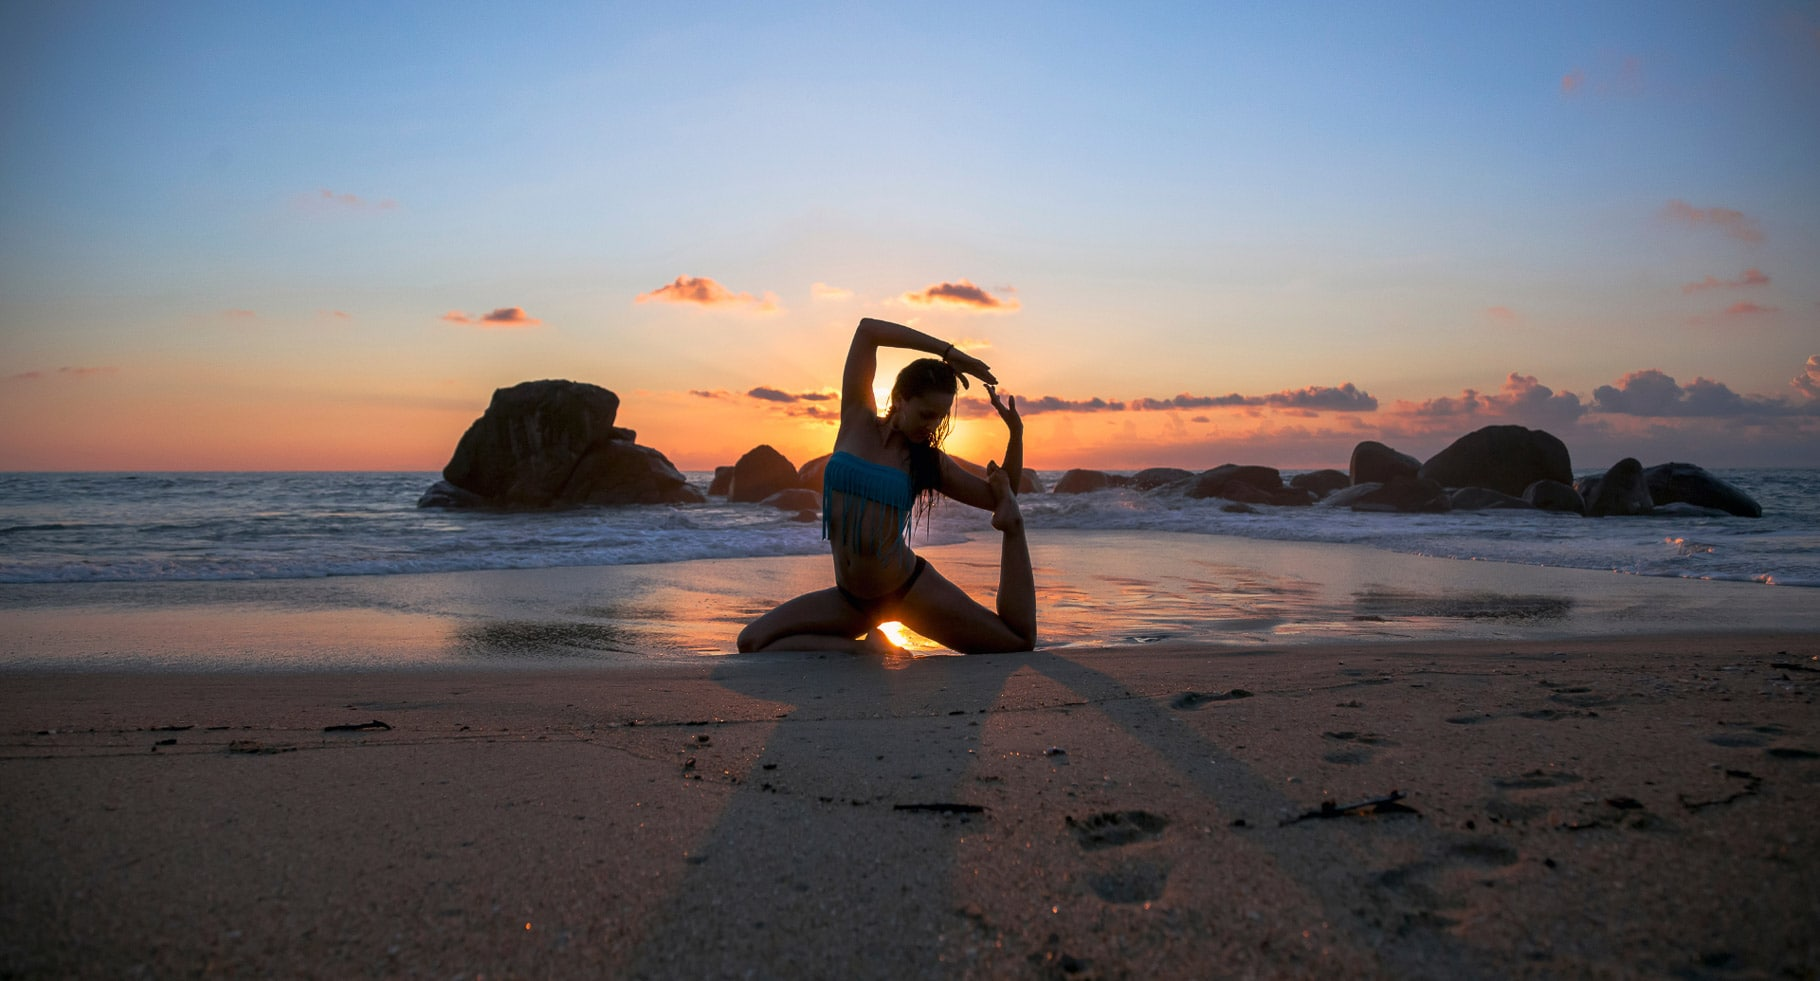 A sunset and woman on a beach doing yoga while traveling